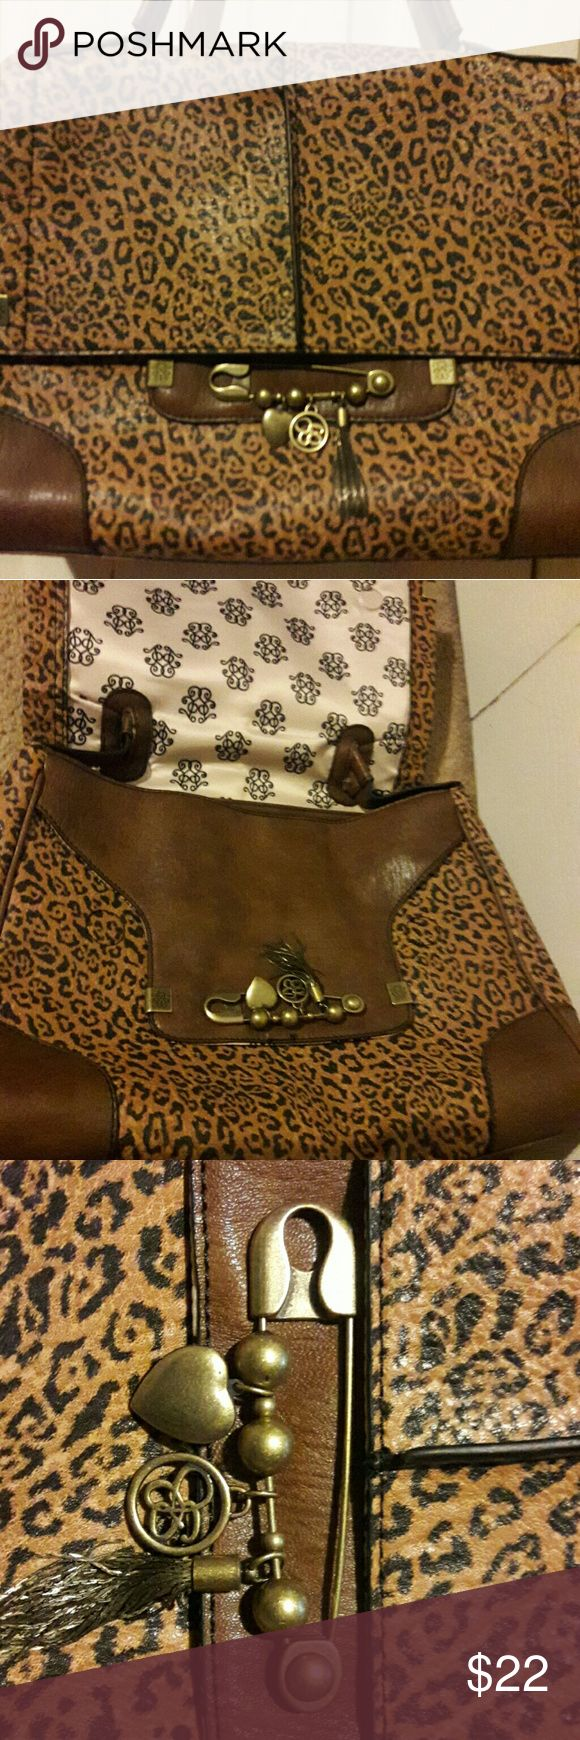 Jessica Simpson animal print handbag New with tag, never used. Hidden compartment cute charms Jessica Simpson Bags Shoulder Bags